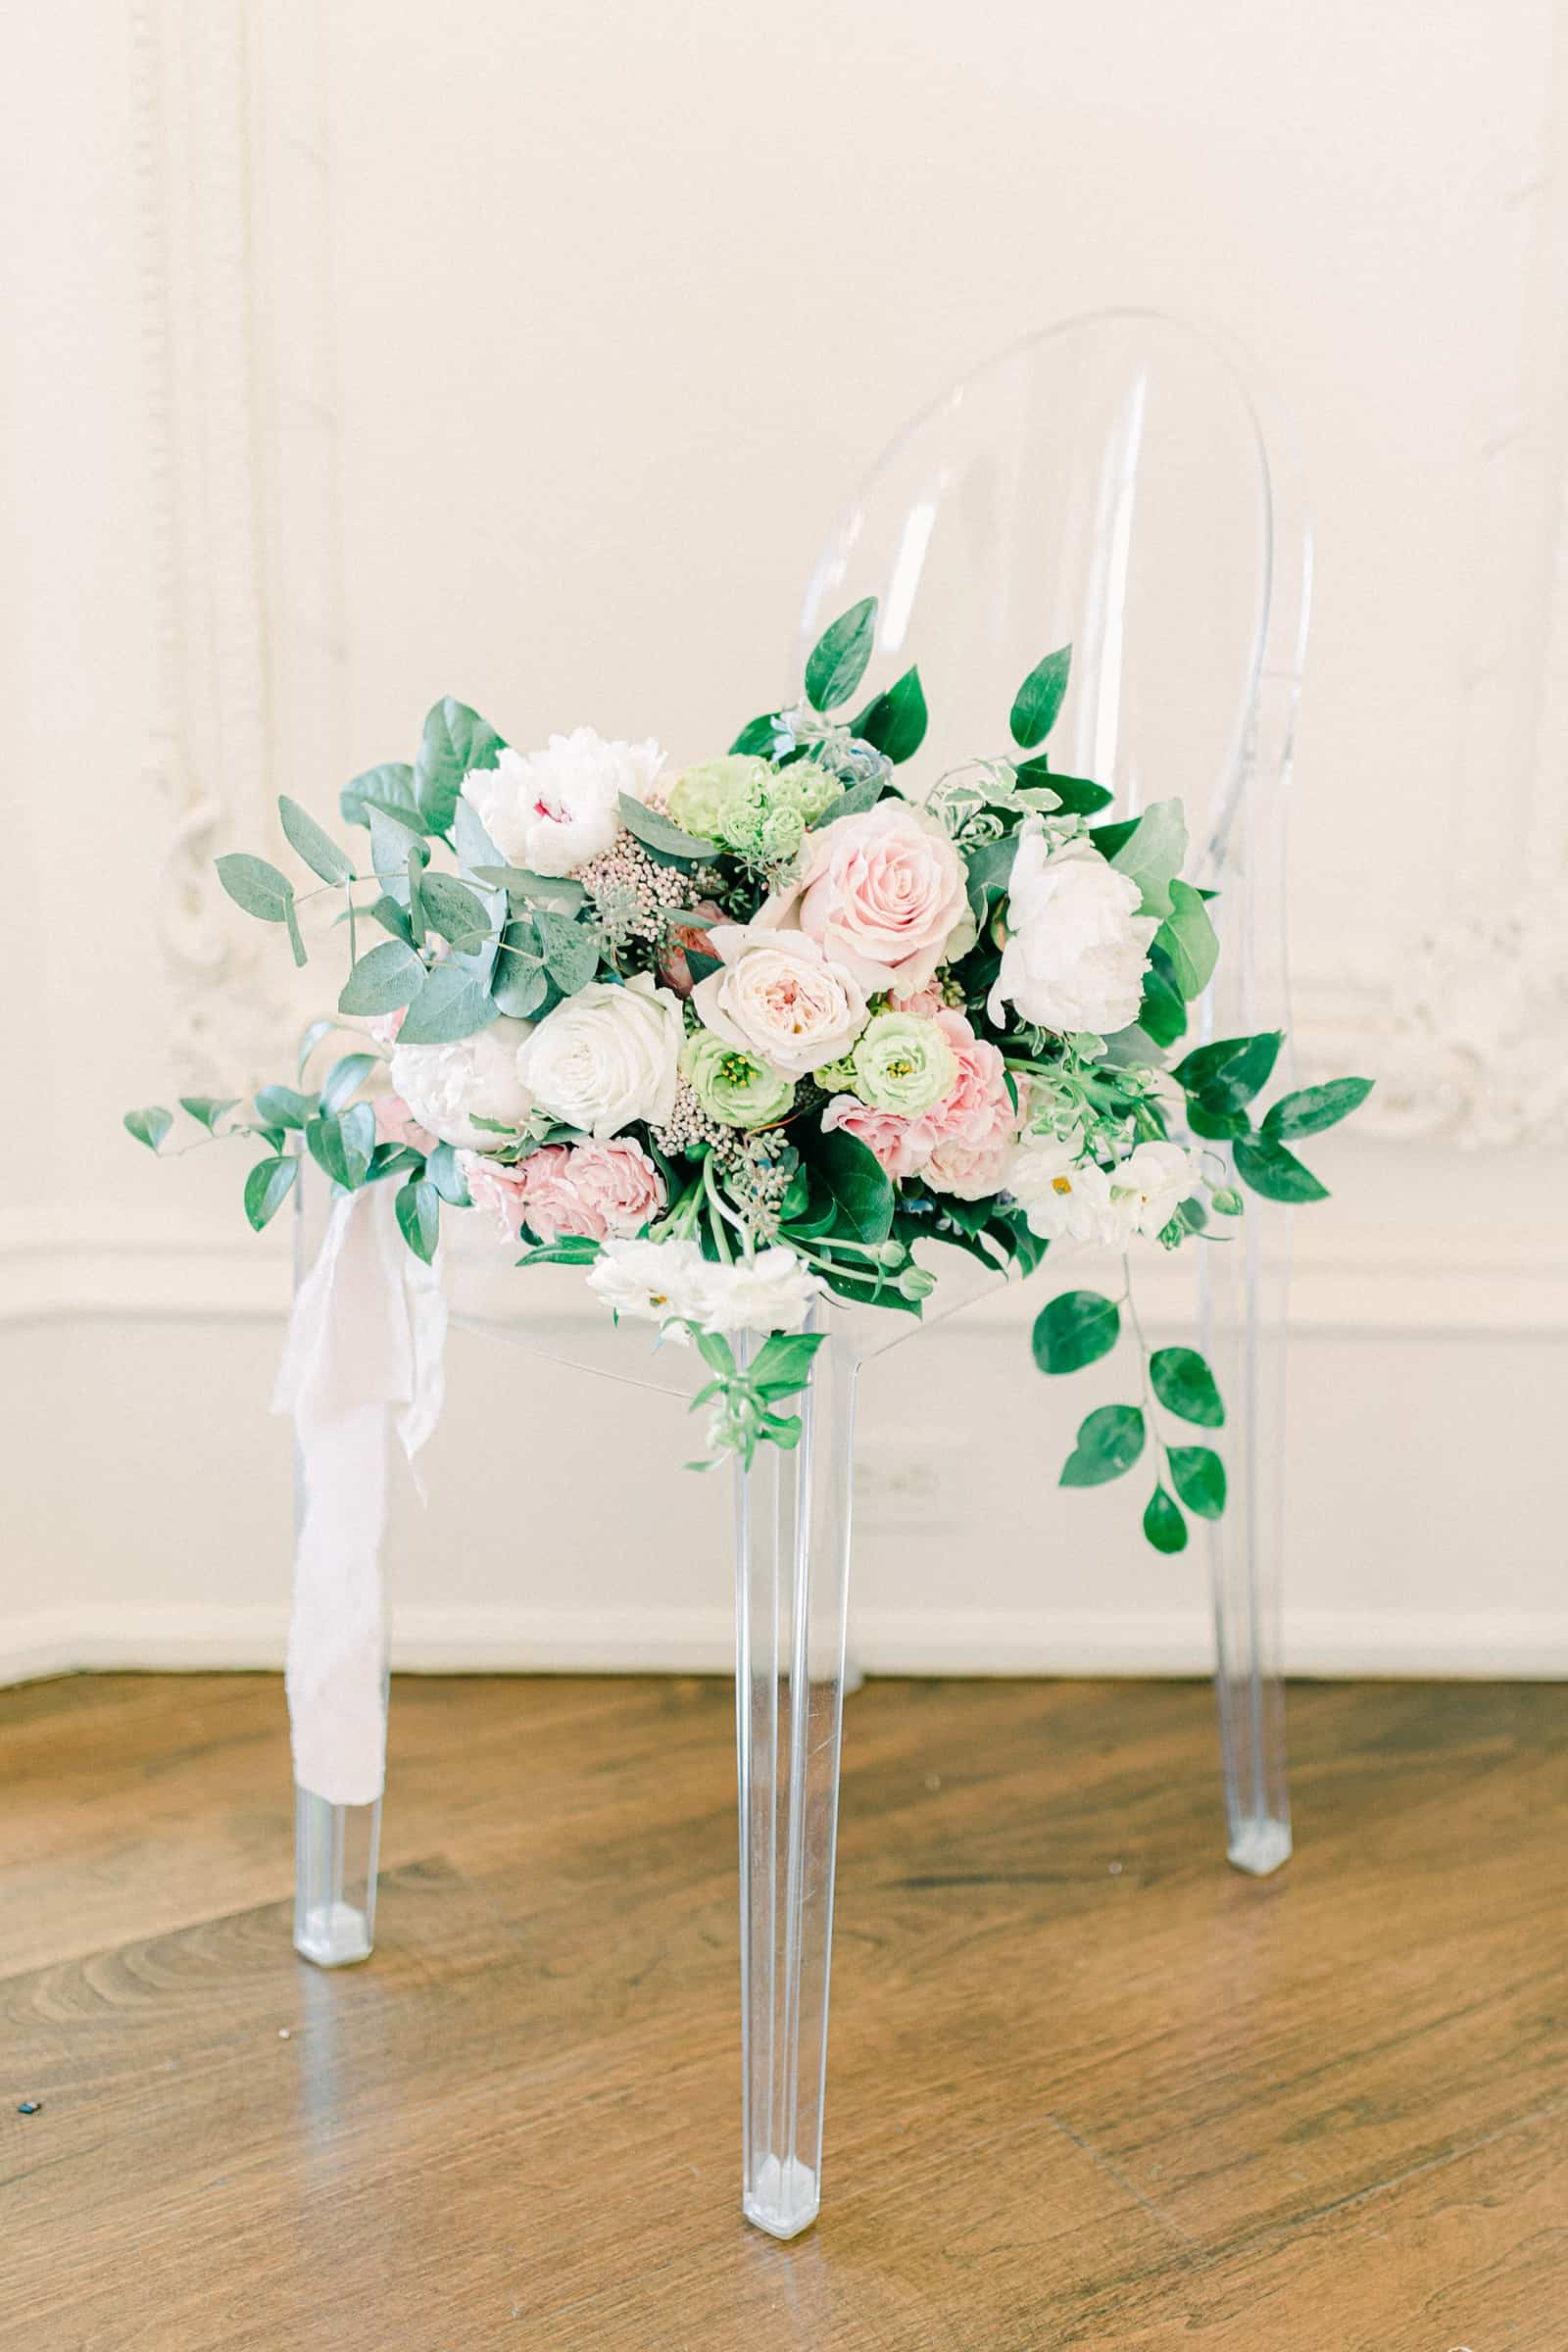 Wedding bouquet with white, green and pink flowers and eucalyptus on clear ghost chair